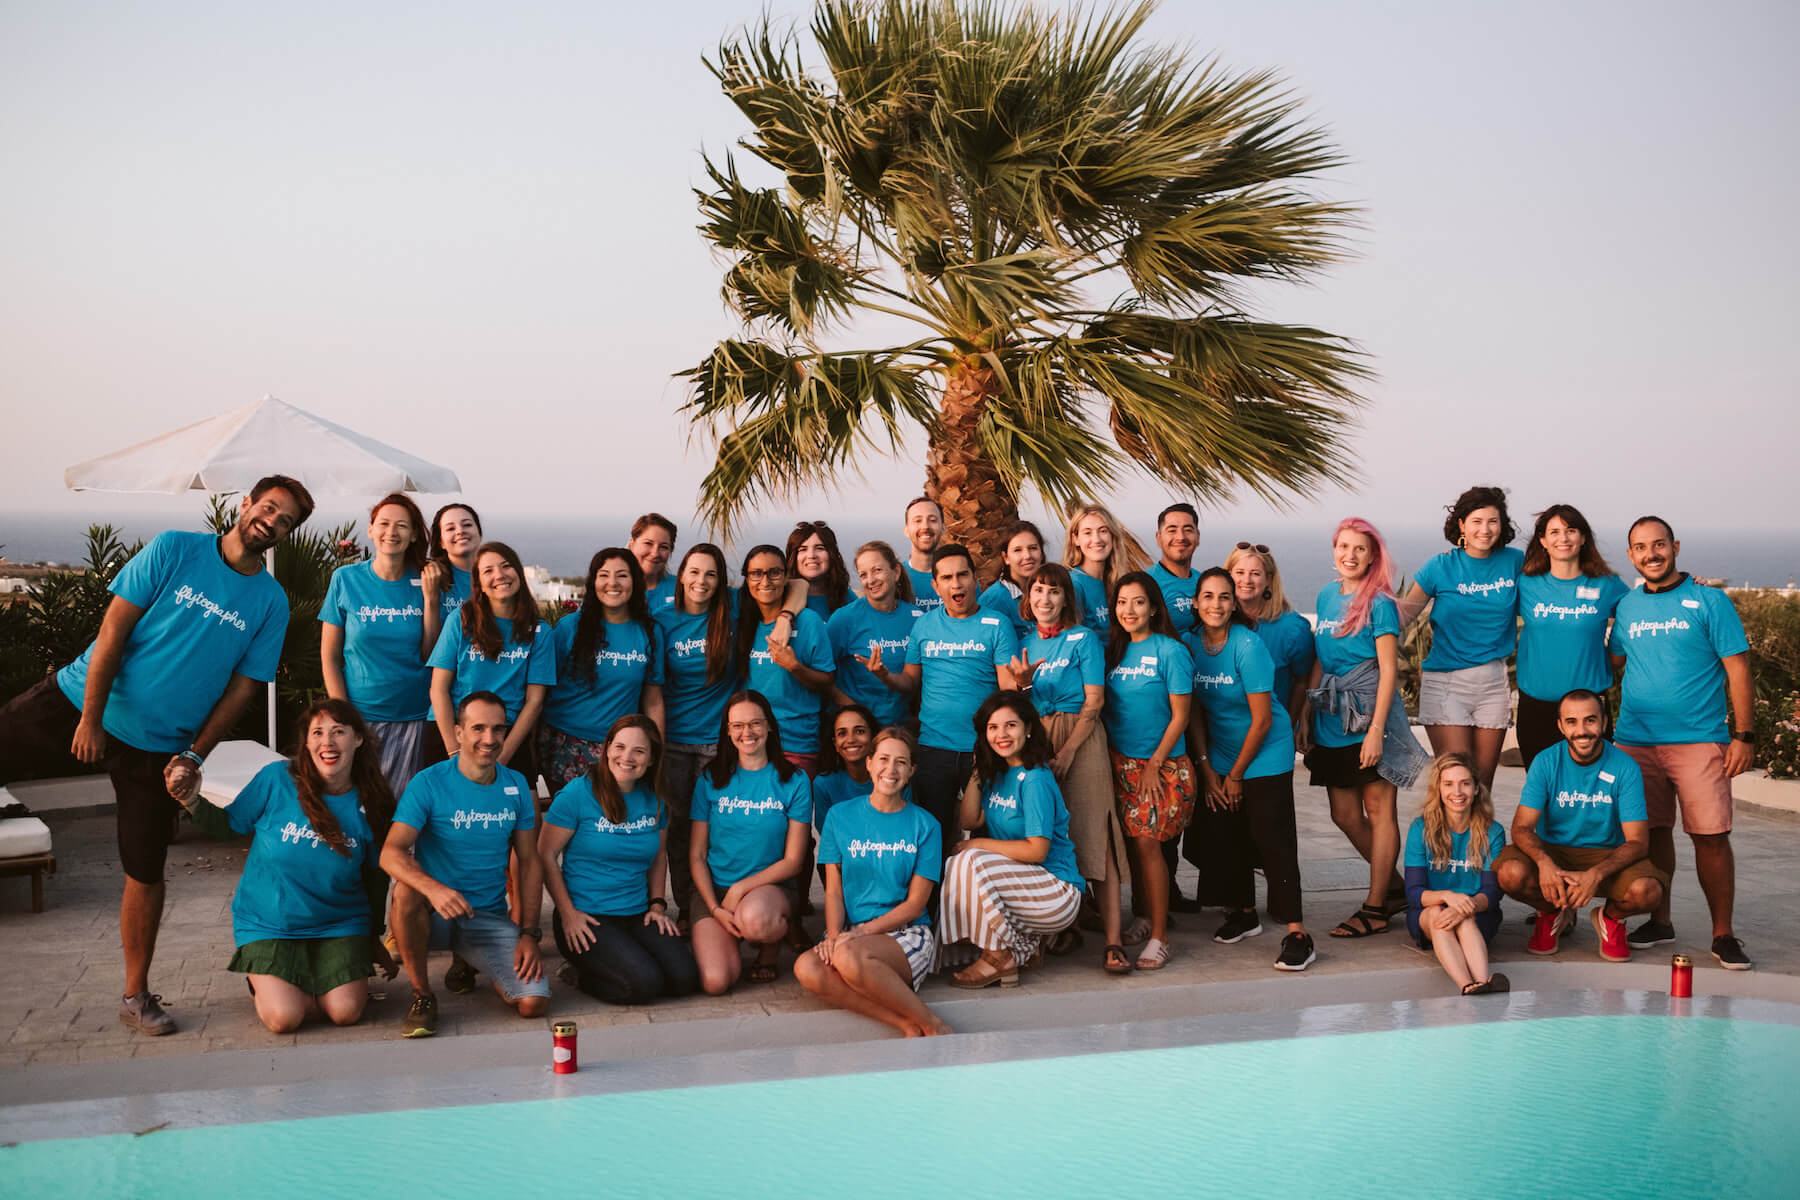 Group of people in blue t-shirts standing by a pool in Santorini, Greece